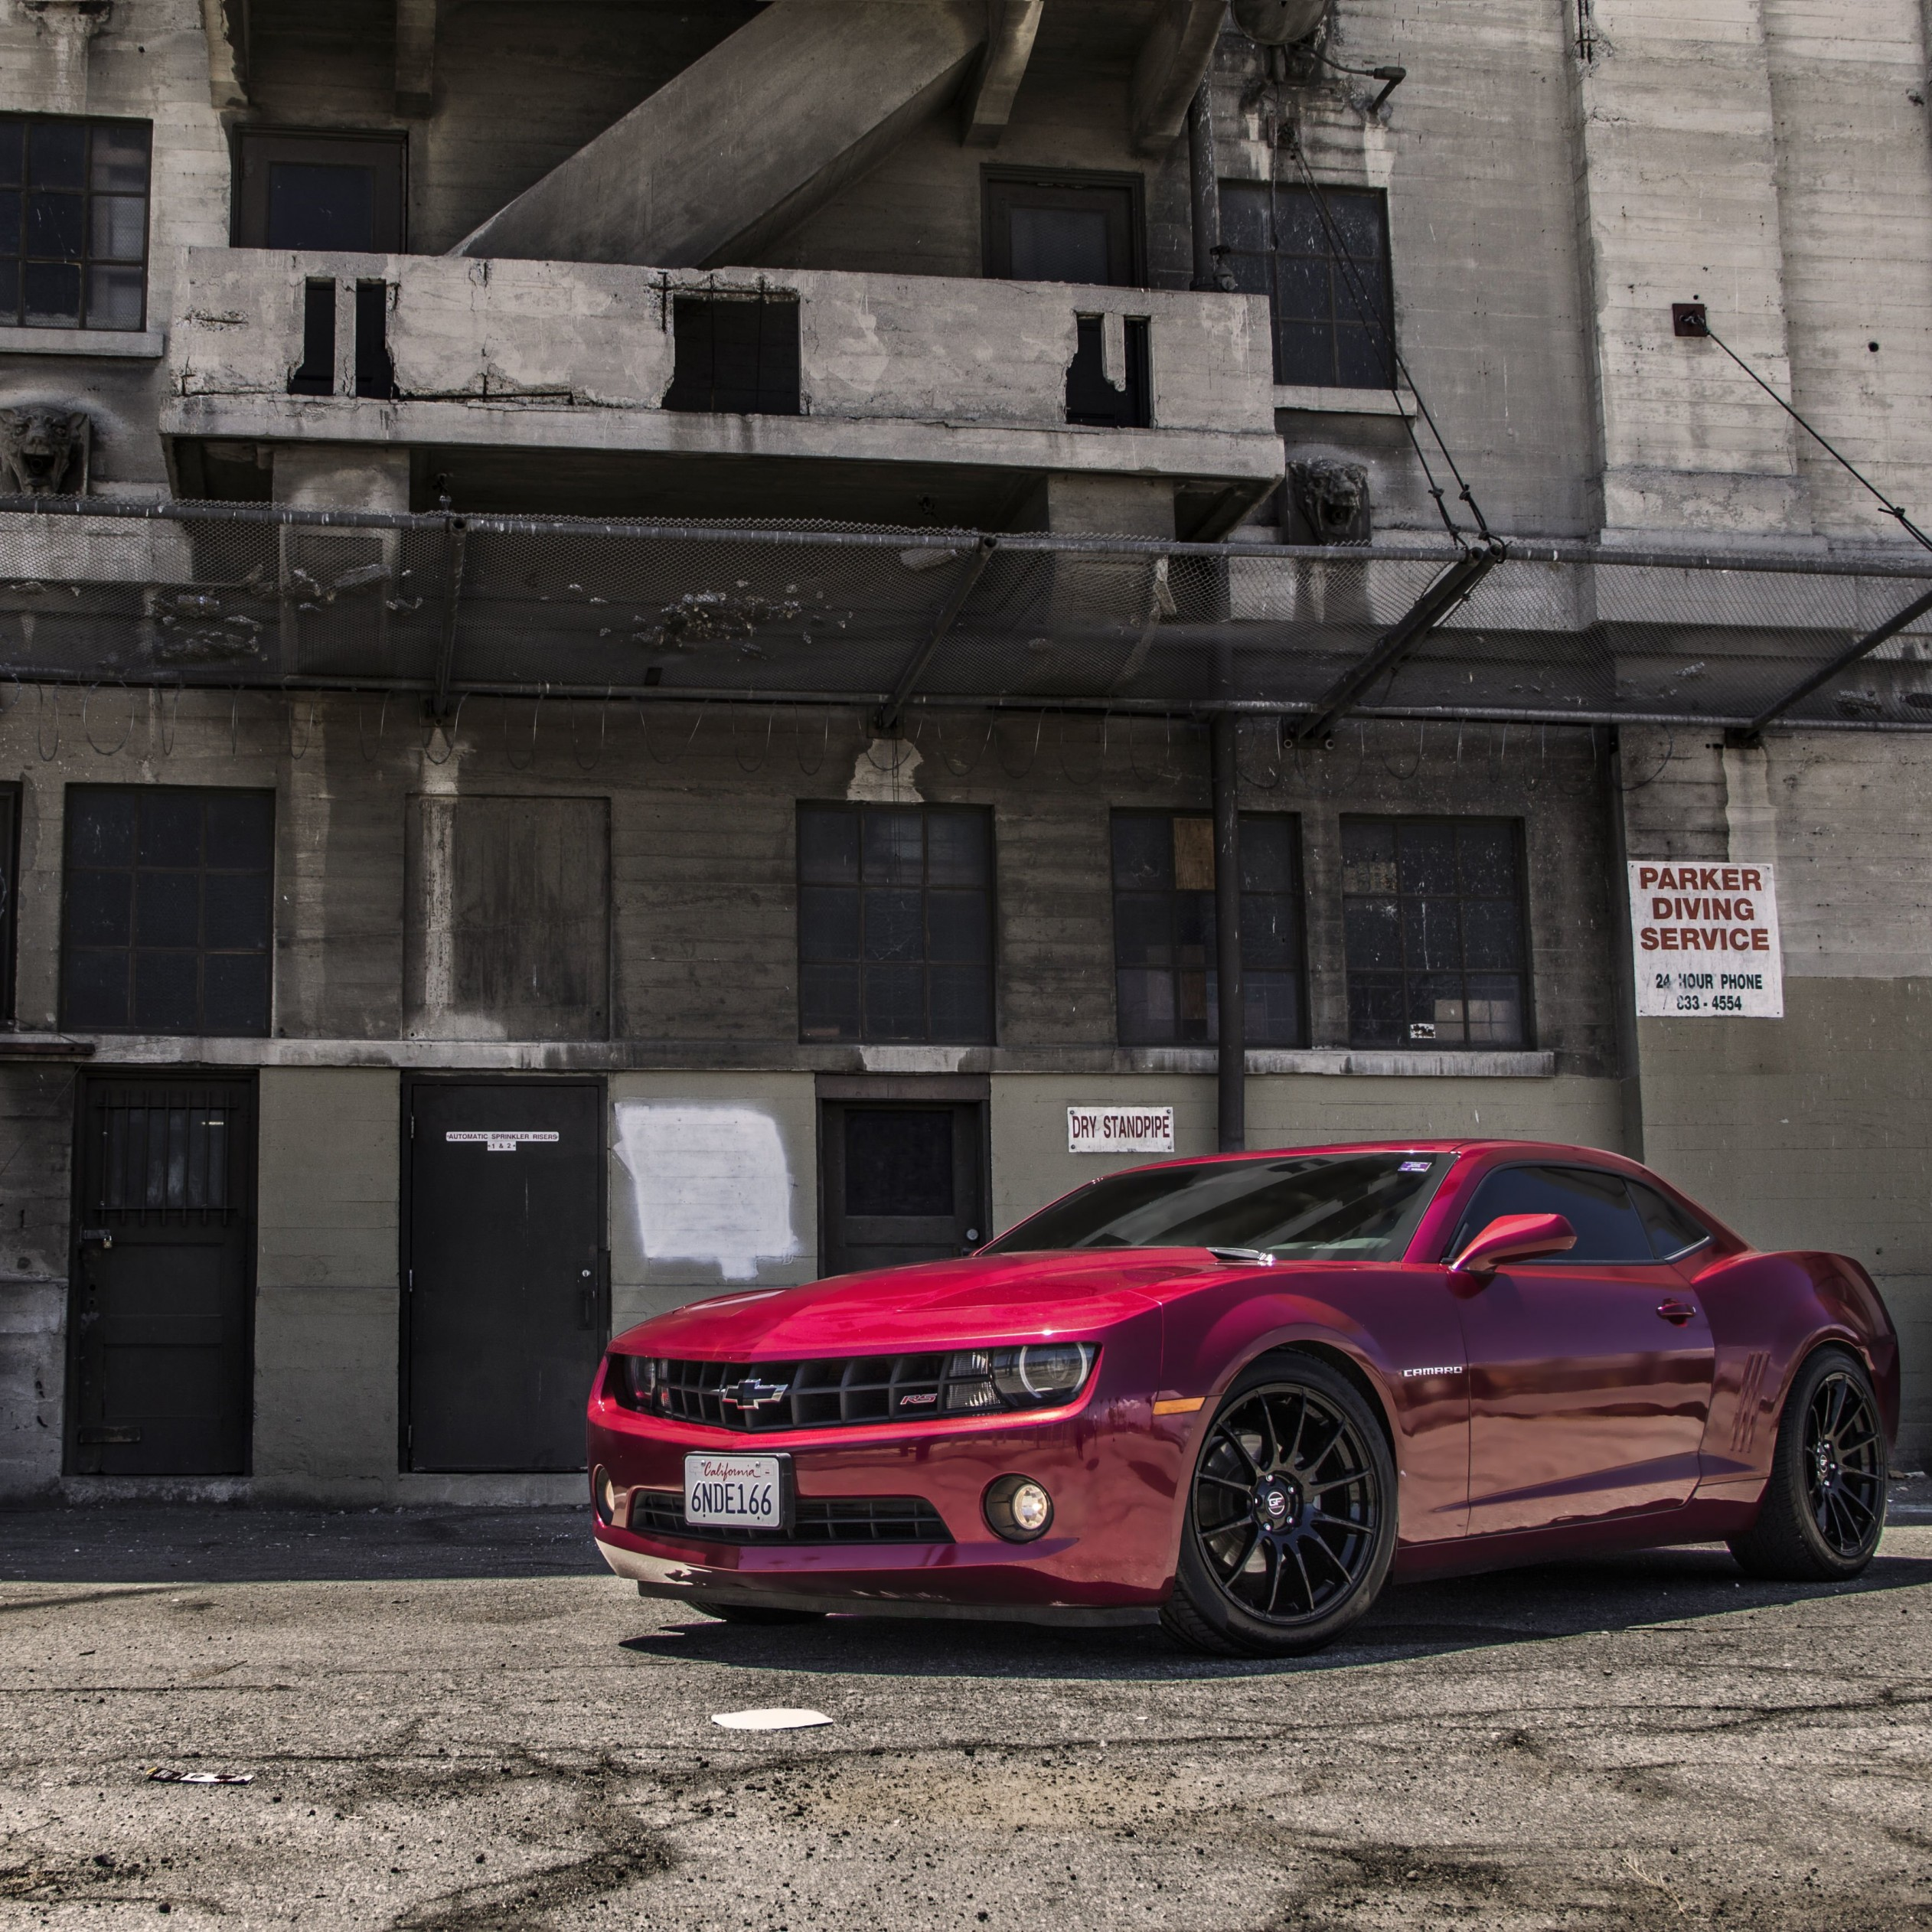 Red Chevrolet Camaro RS Wallpaper for Apple iPad Air